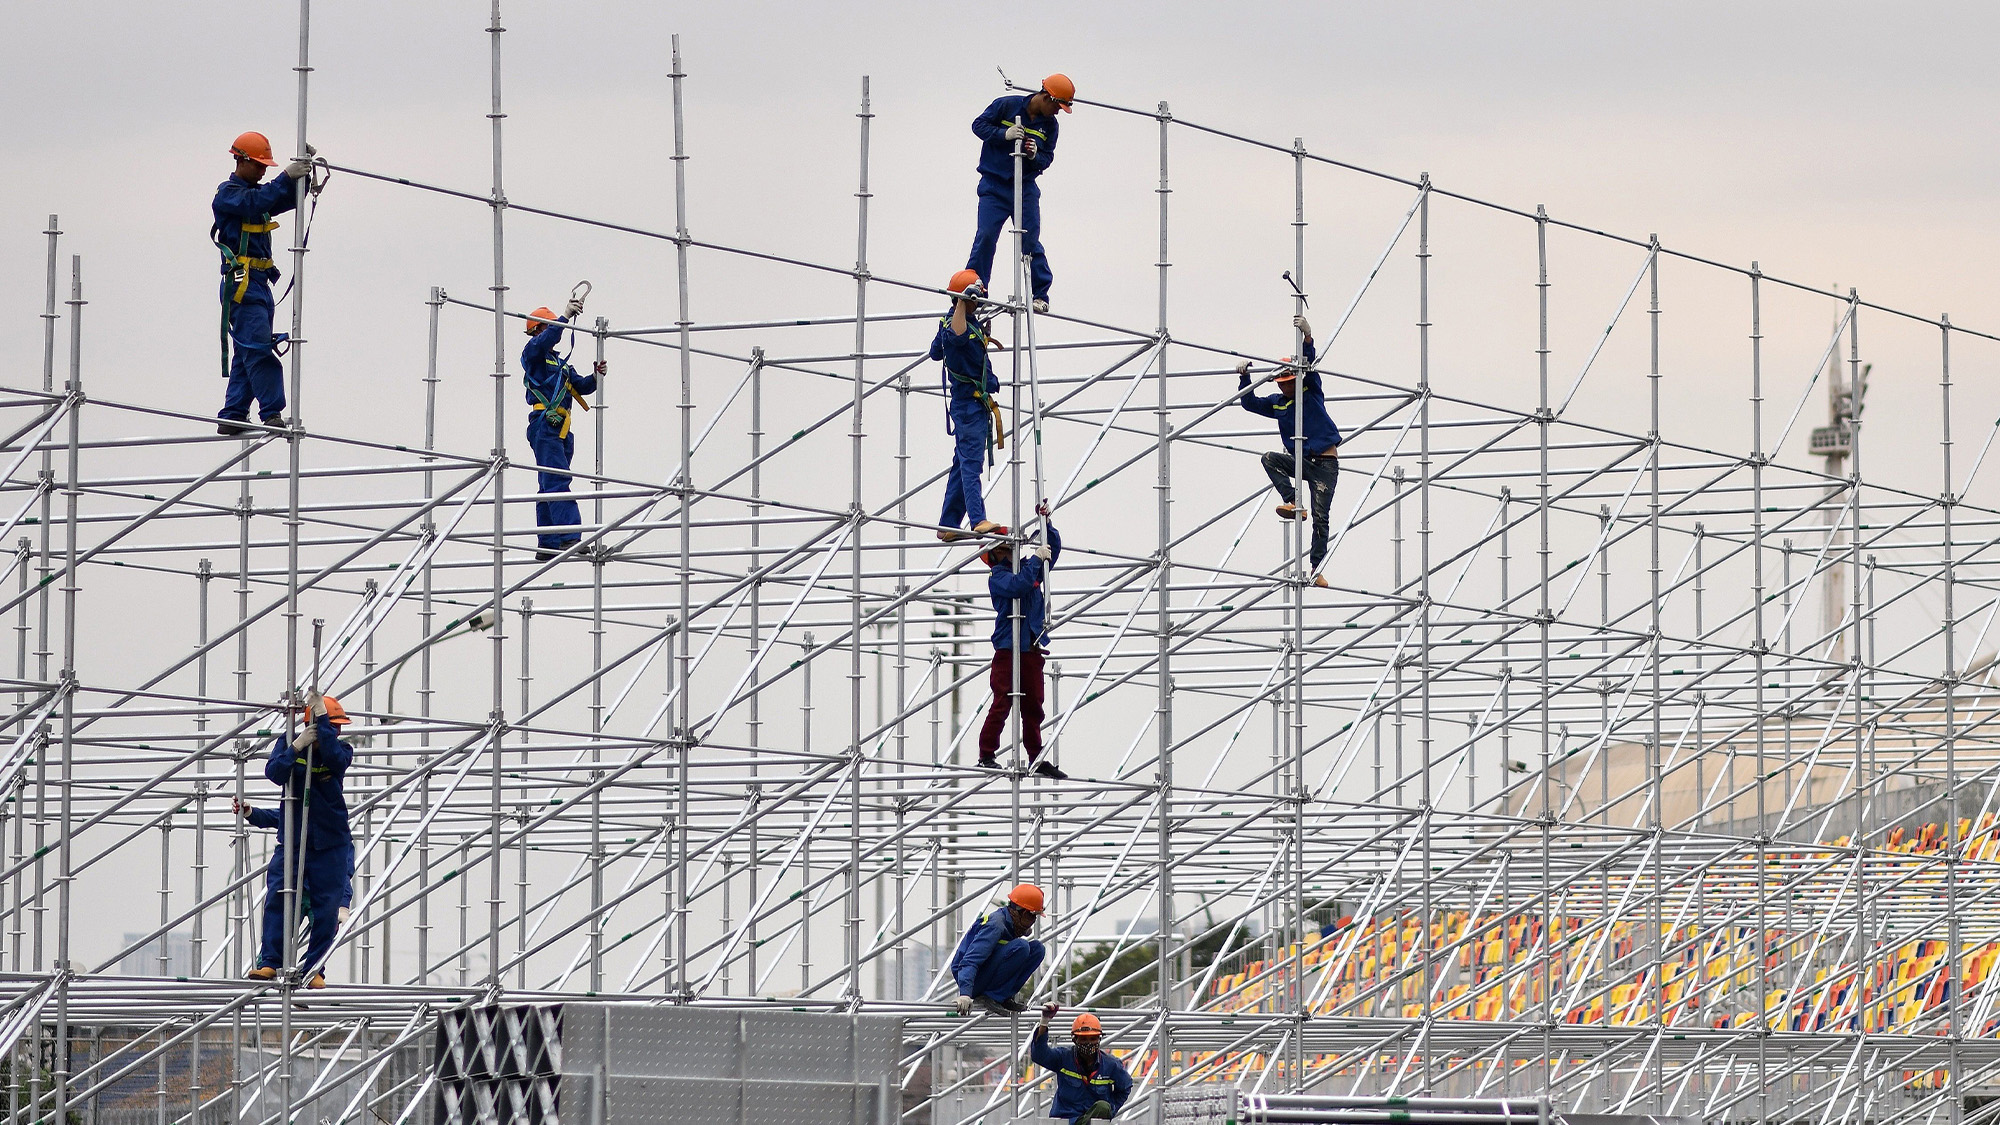 Workers erect scaffolding at the Hanoi street circuit in Vietnam